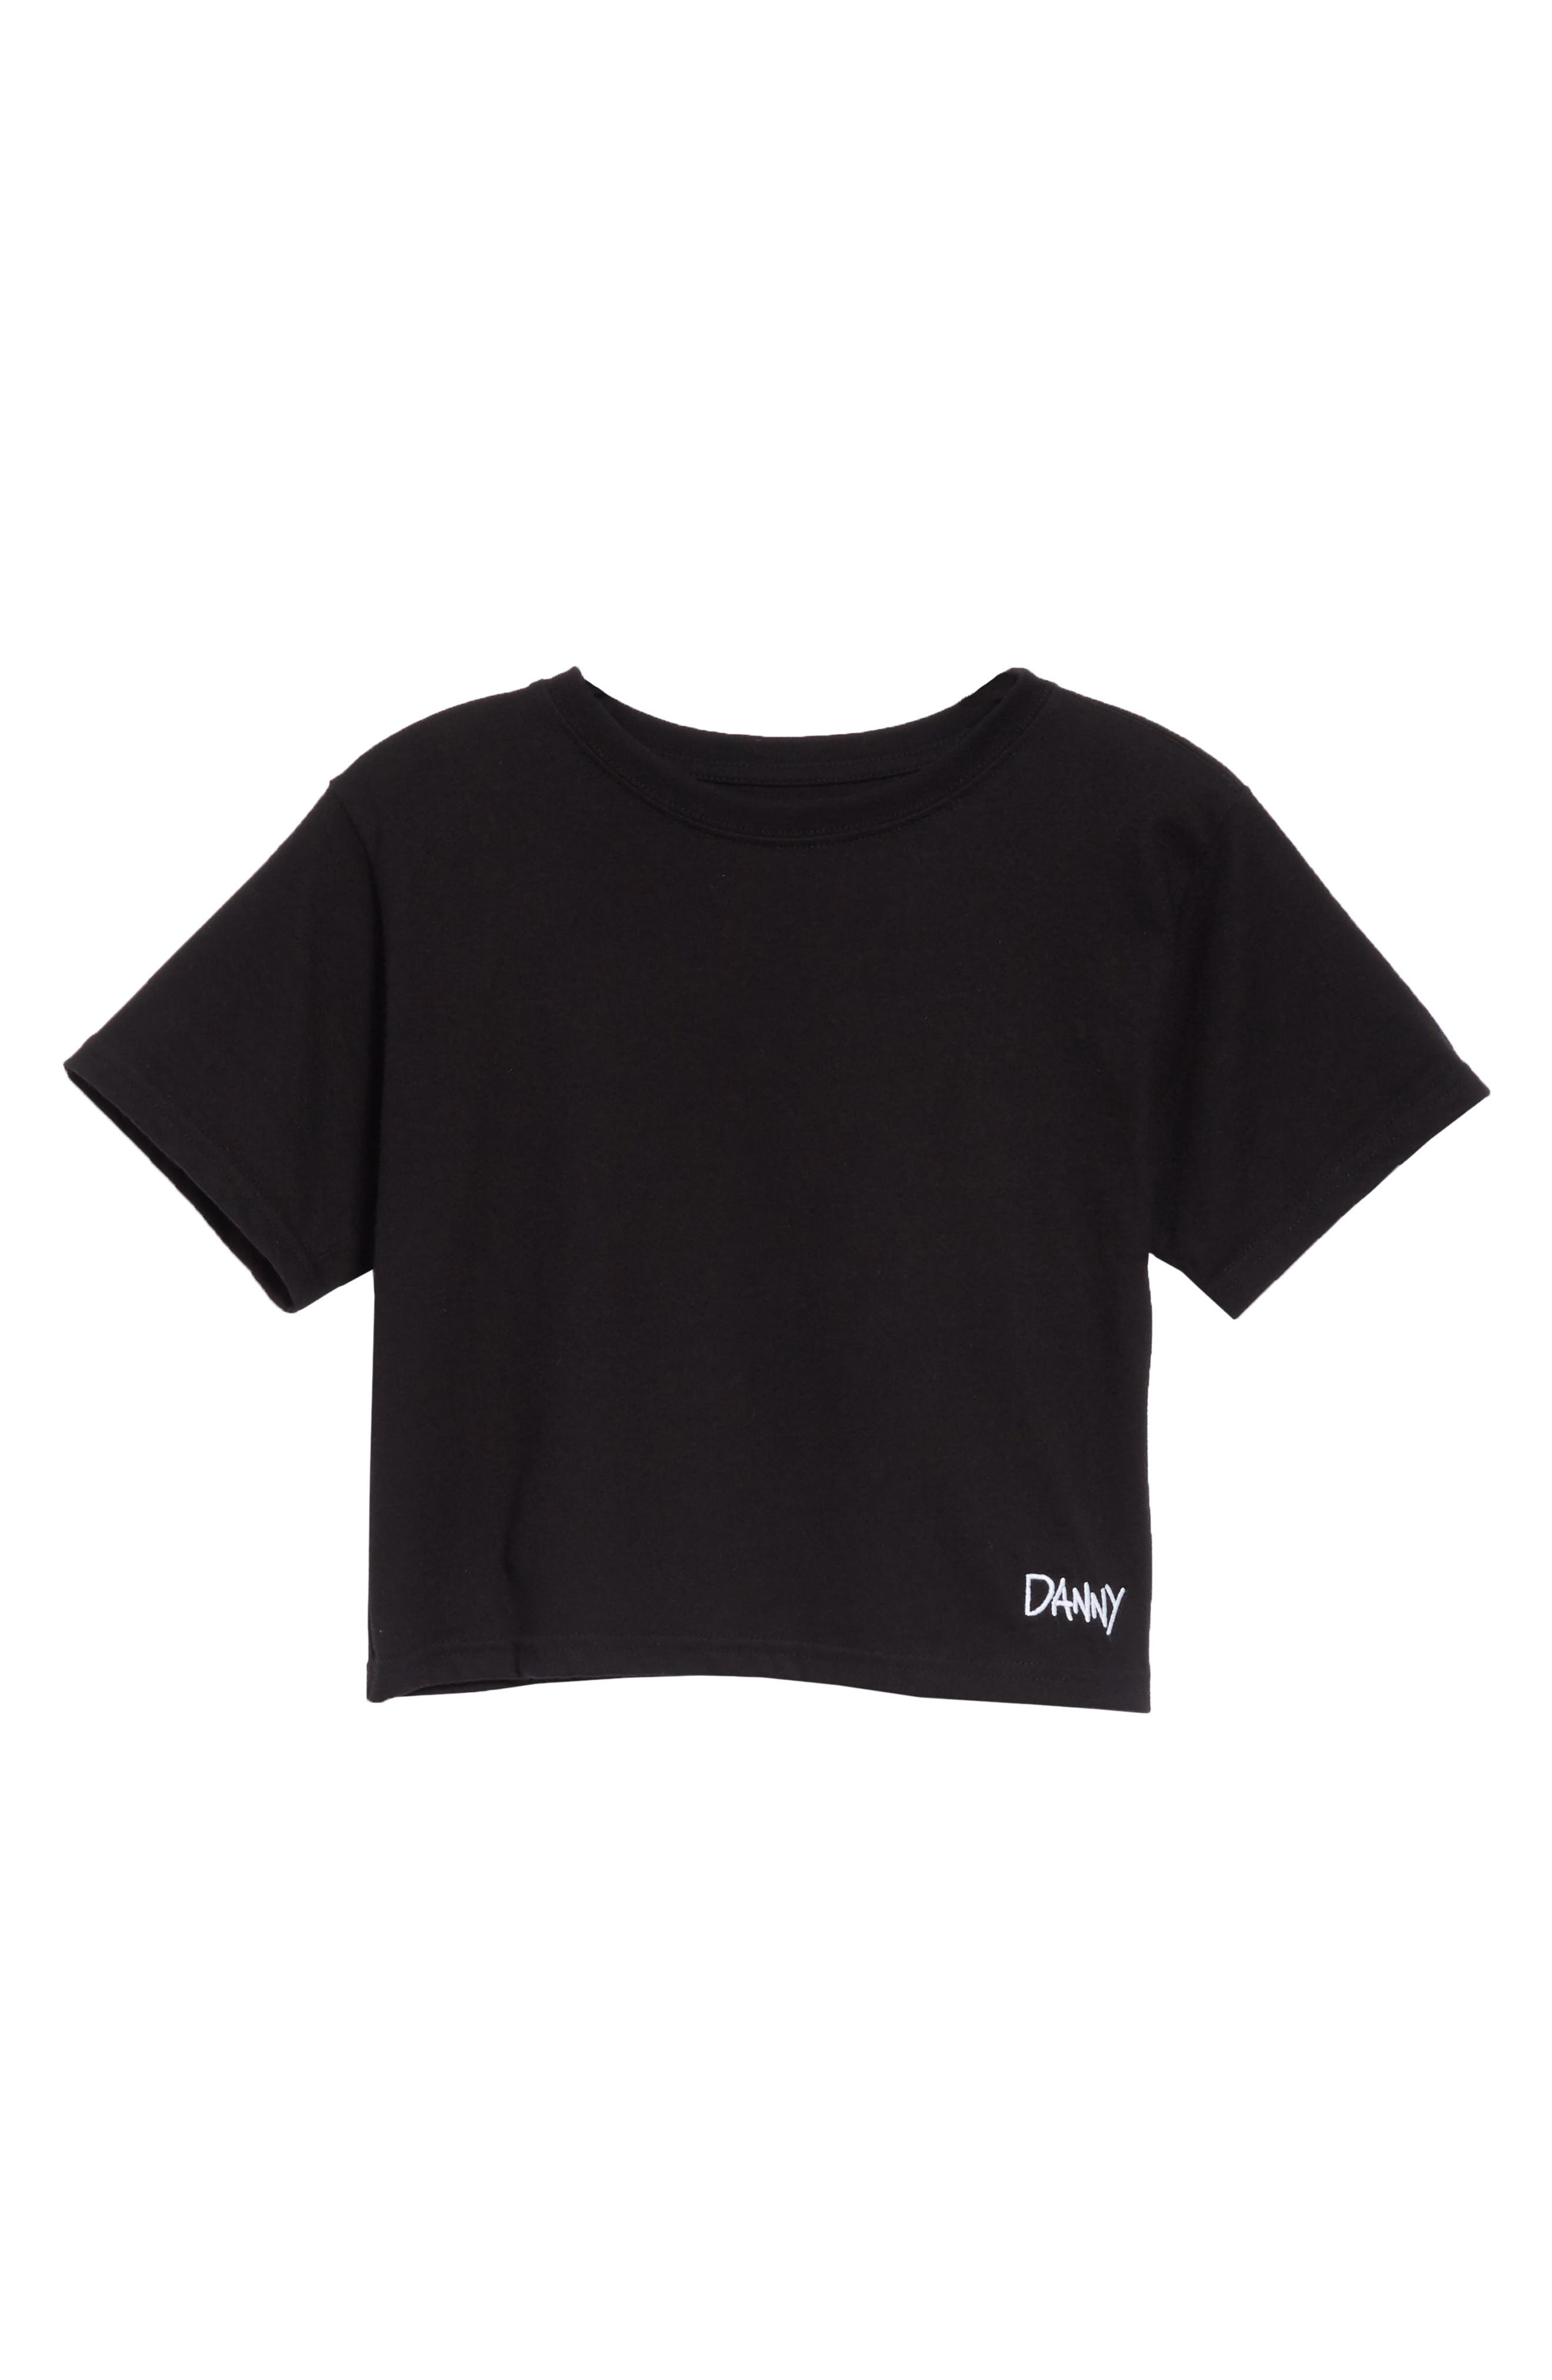 x Paramount Grease Danny Crop Top,                             Alternate thumbnail 6, color,                             DANNY BLACK